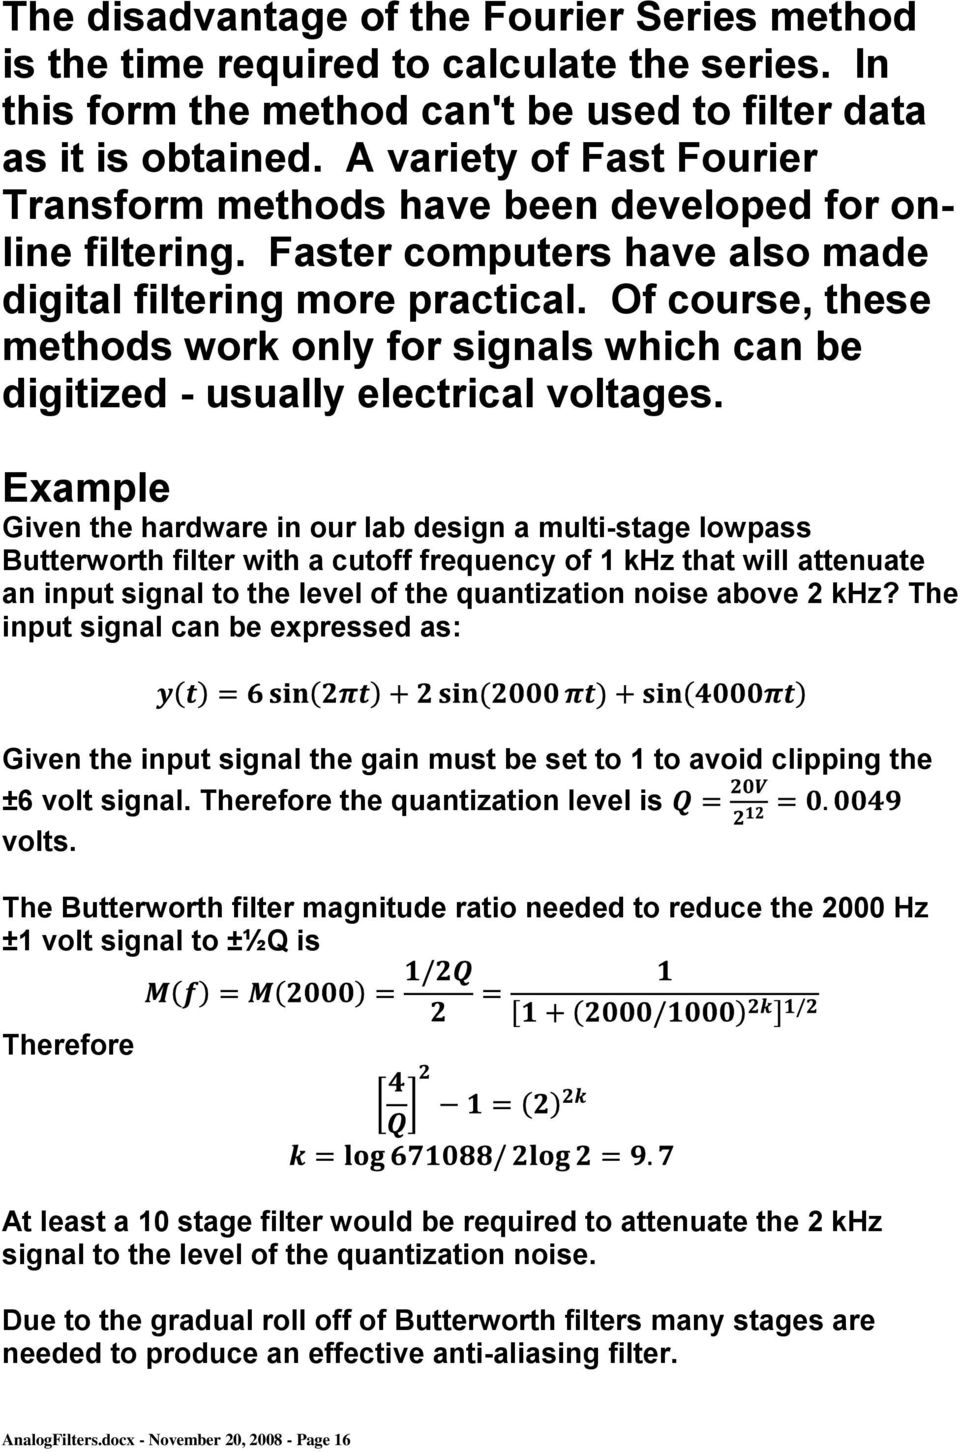 Of course, these methods work only for signals which can be digitized - usually electrical voltages.